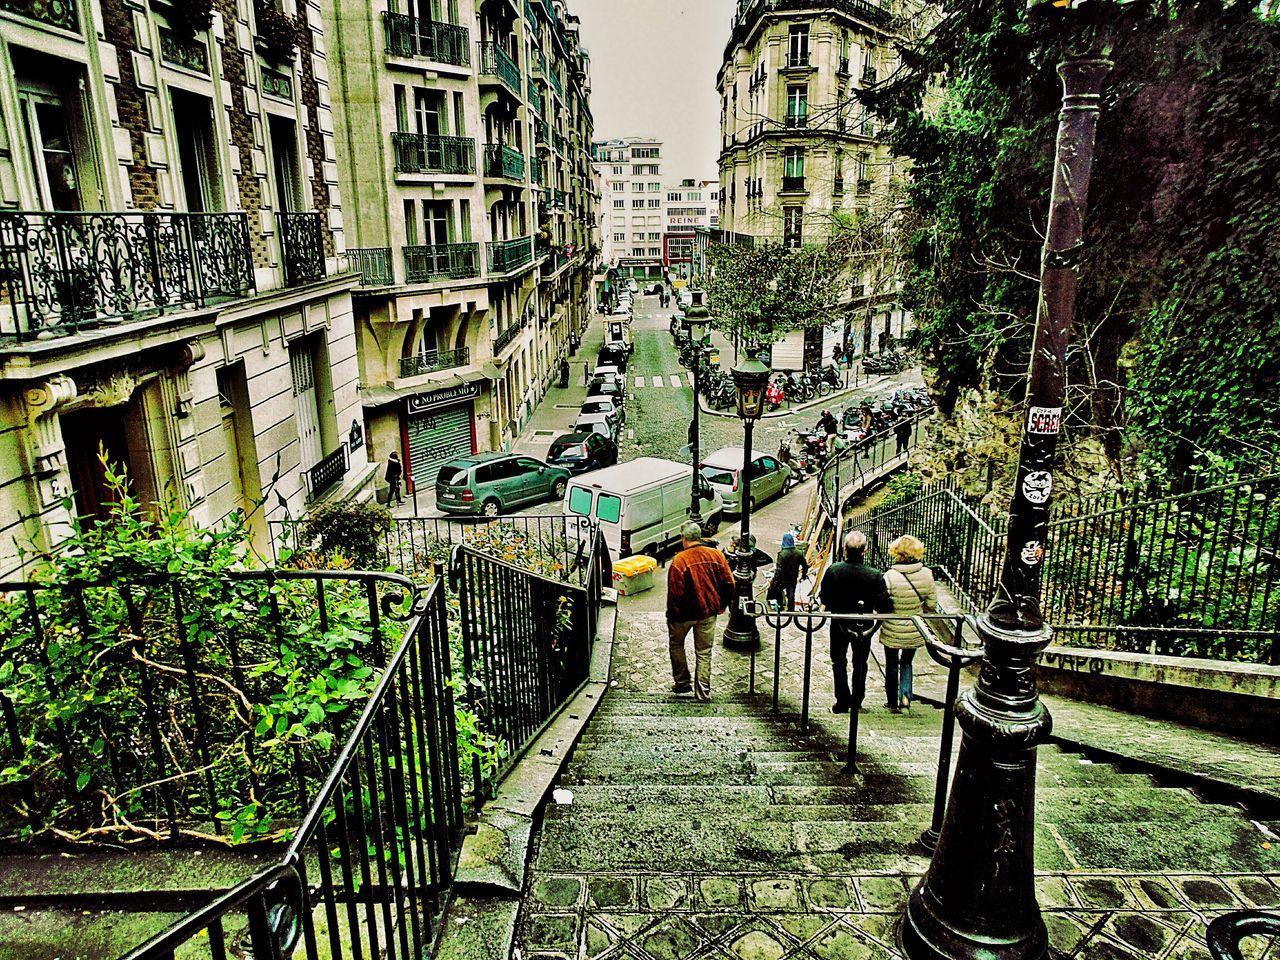 Downstairs from Sacre Coeur Saturday Afternoon Little Streets People In The Streets No Car Traffic Old Buildings Cityscape City View  Urban Landscape Urban Lifestyle Paris France 🇫🇷 The Street Photographer - 2016 EyeEm Awards